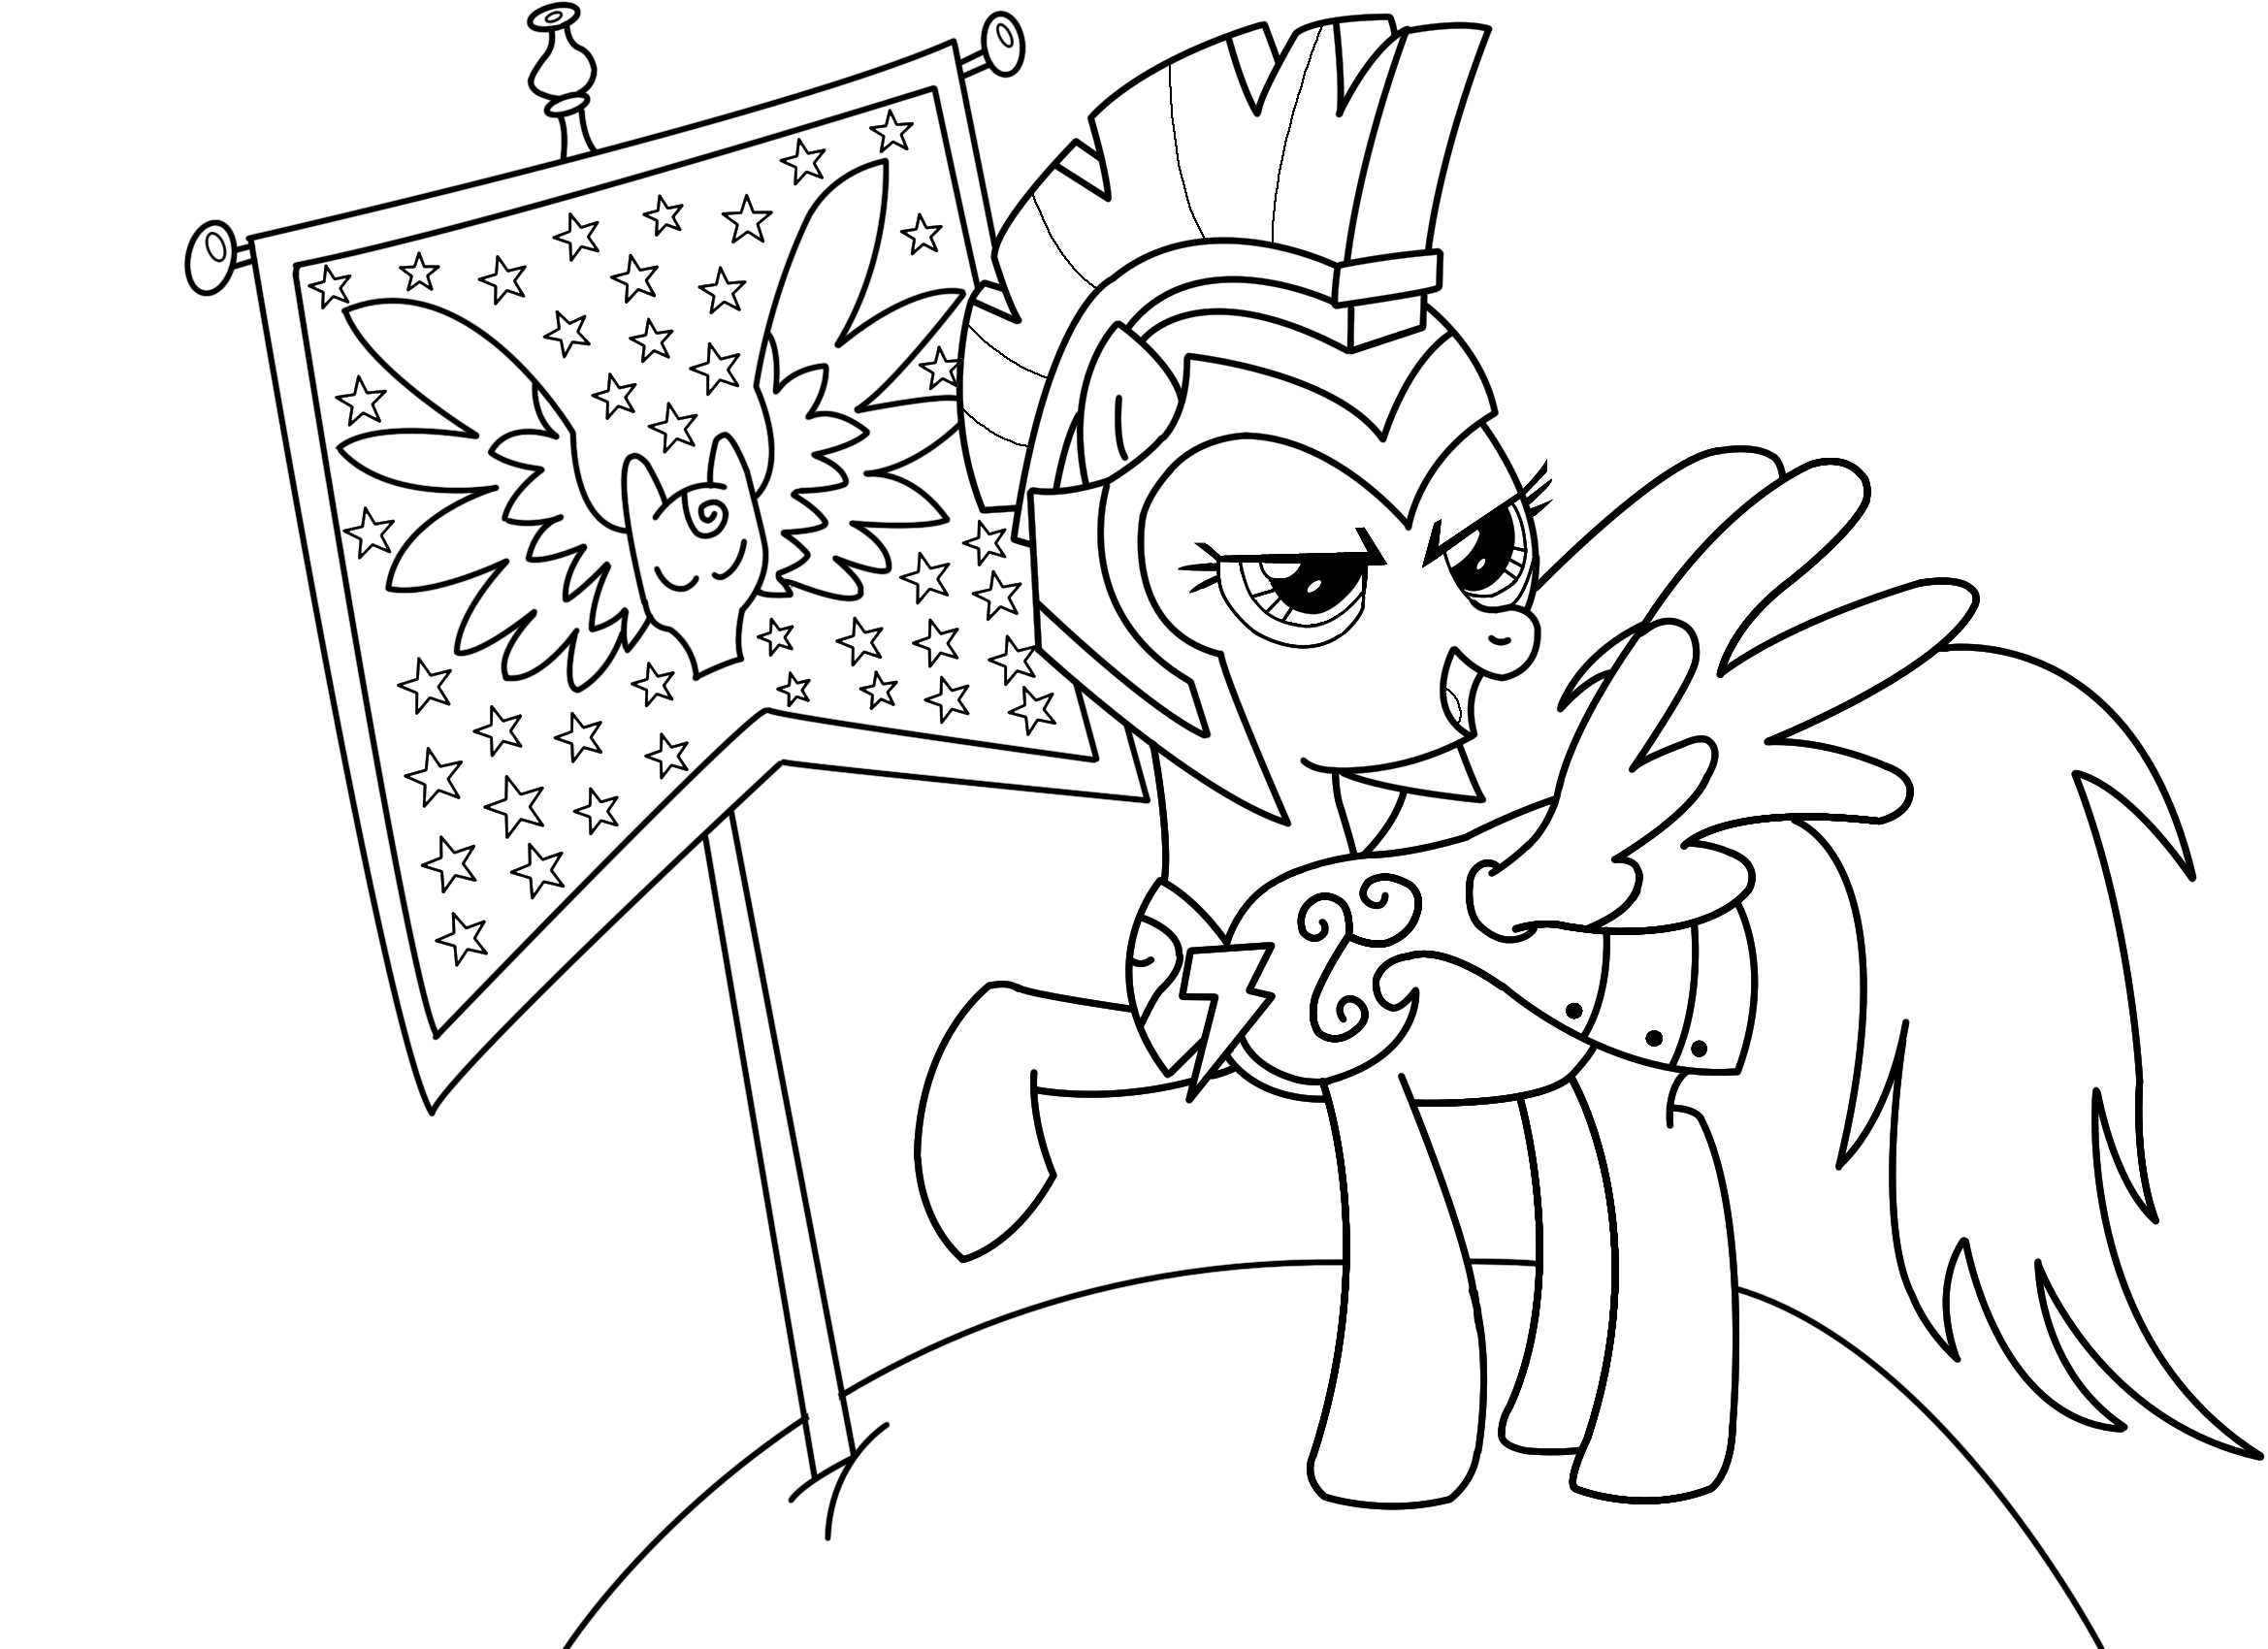 Line Drawing Rainbow : Rainbow dash commander hurricane line art by mento on